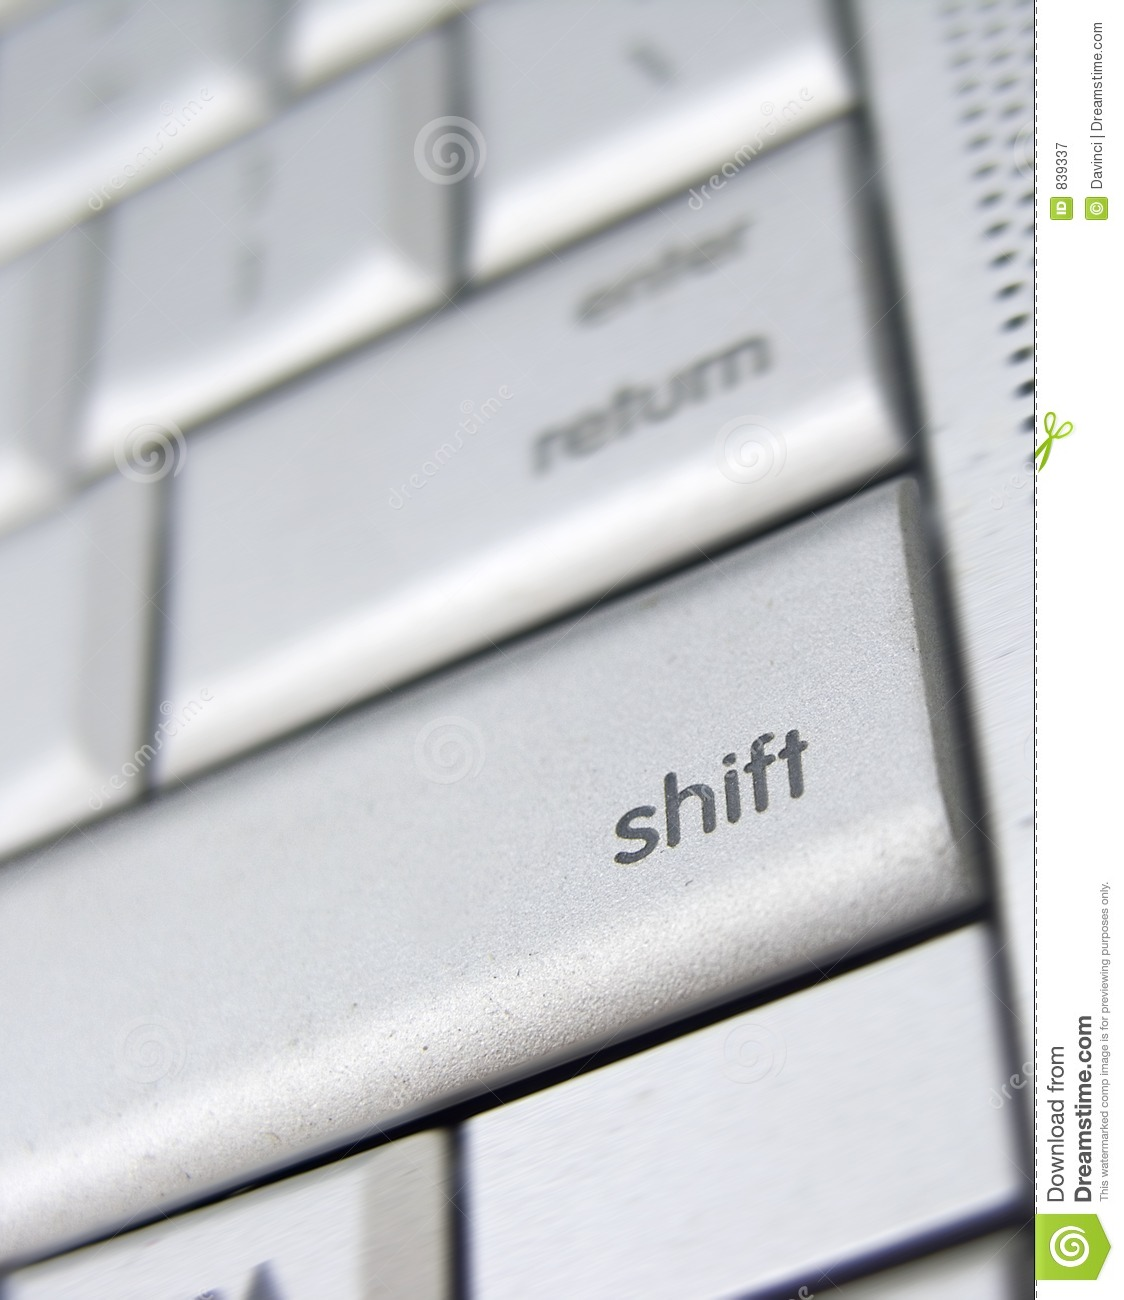 how to fix a key laptop shift key